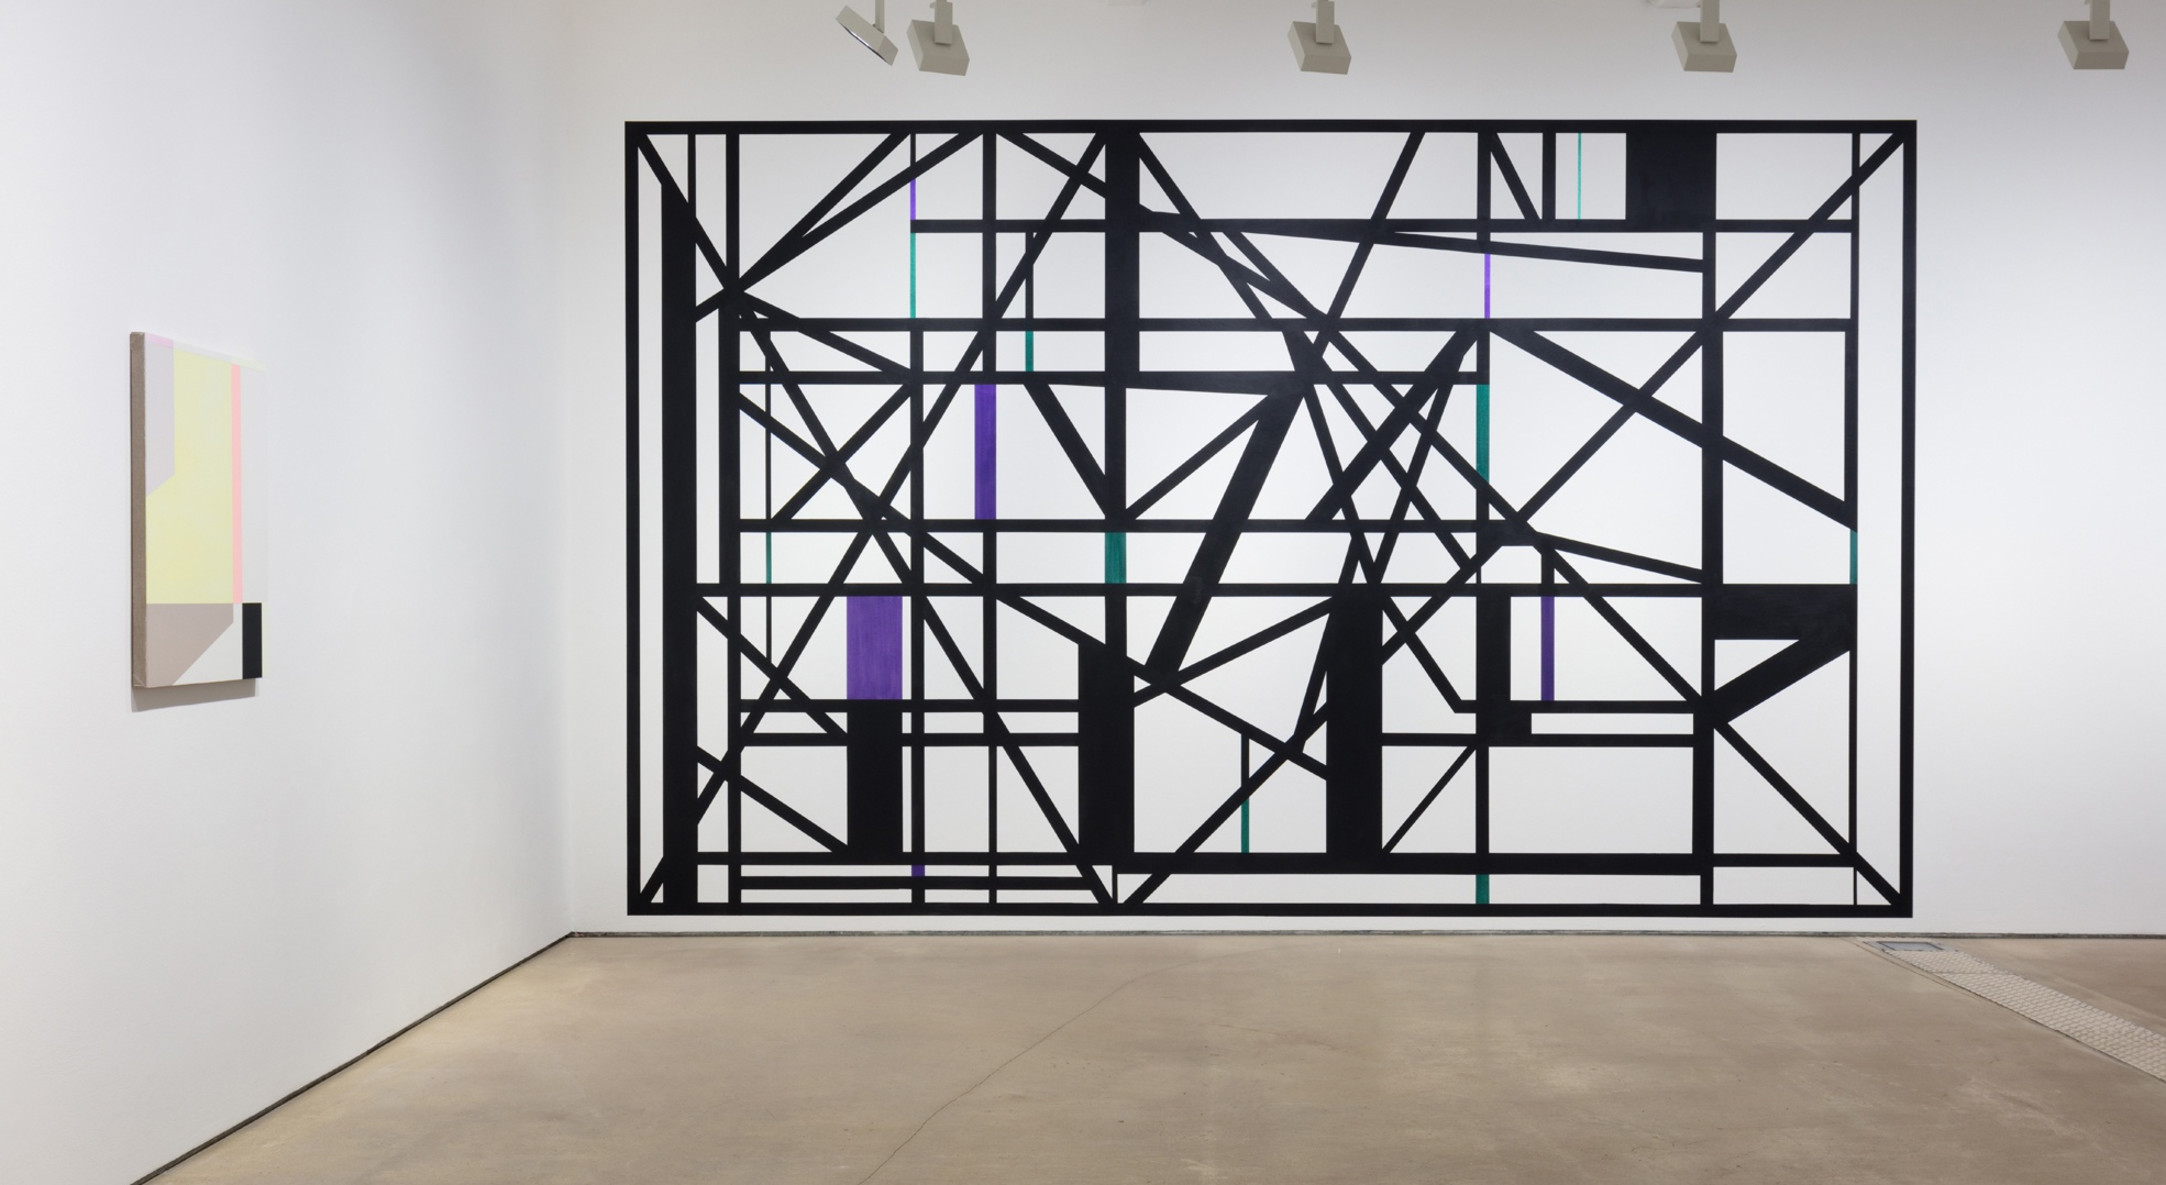 Installation view of Andrew Bick Concrete-Disco-Systems at Hales Gallery London, 2019